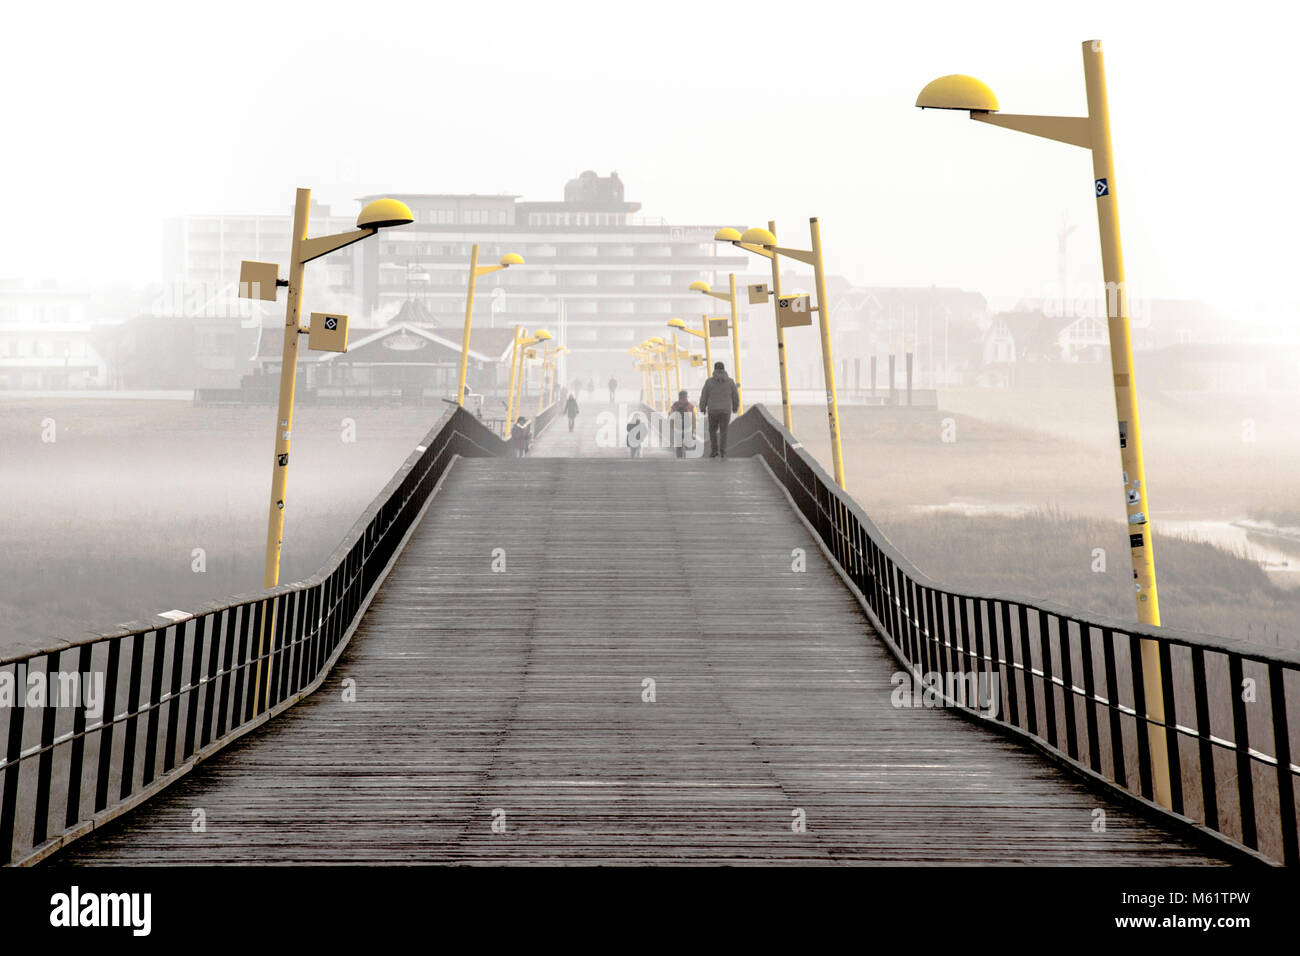 Starting point and destination for extensive hikes: The Ambassador Hotel & Spa and promenade pier in St Peter Ording, seaside resort, Germany Stock Photo